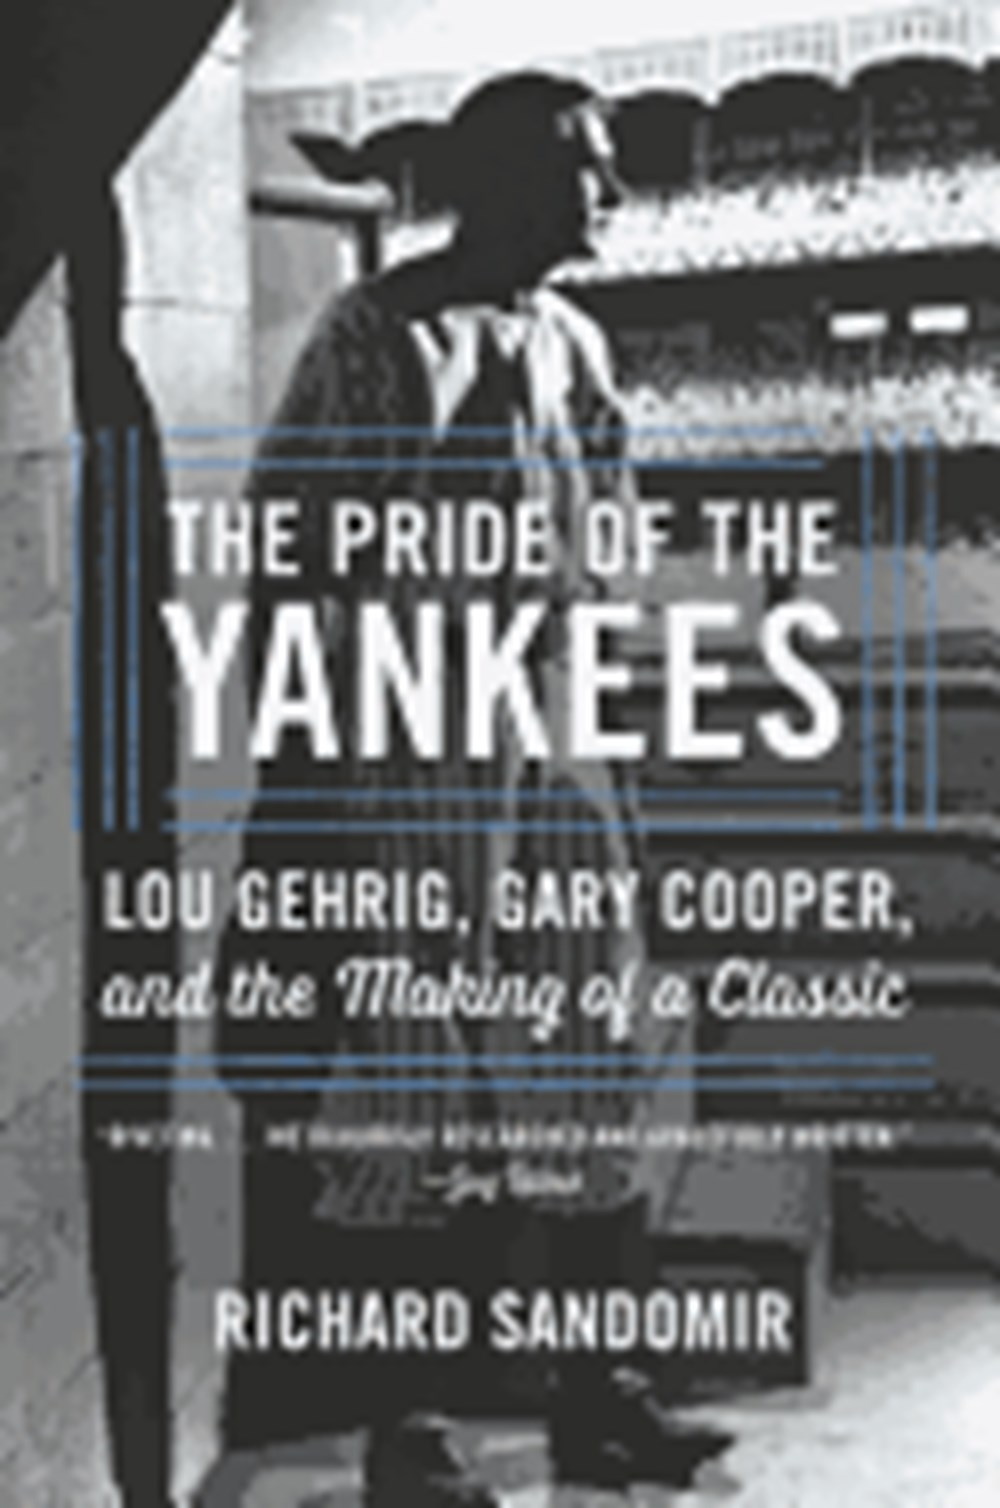 Pride of the Yankees Lou Gehrig, Gary Cooper, and the Making of a Classic